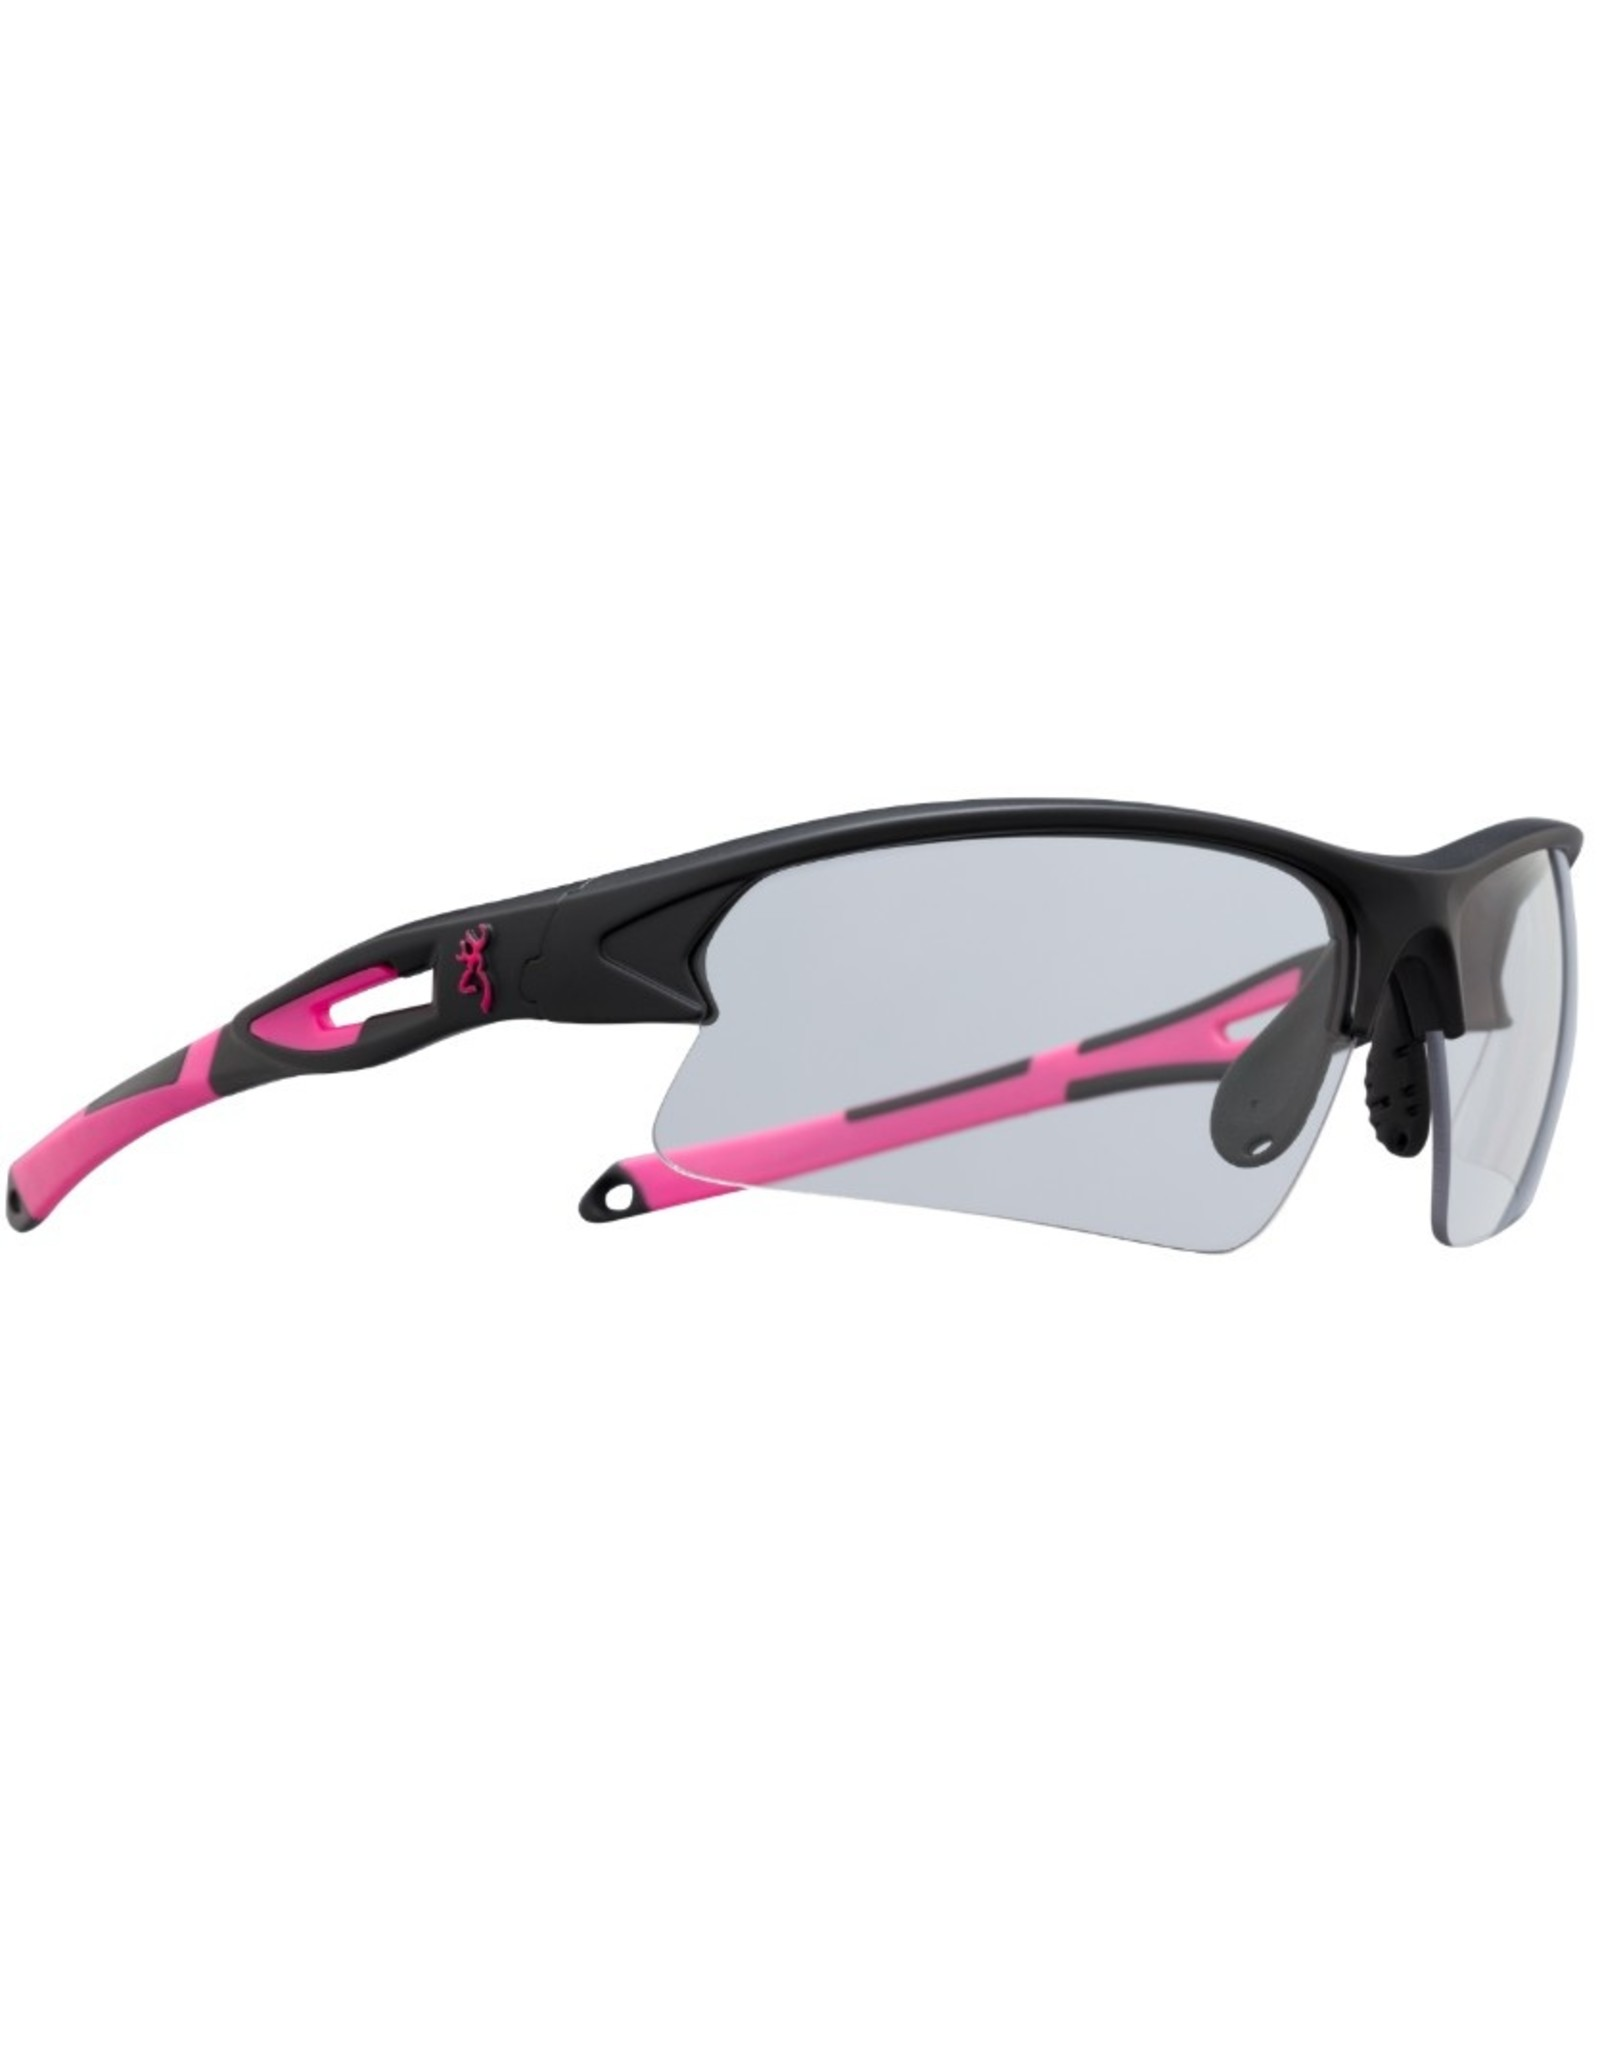 Browning On-Point Shooting Glasses - Pink